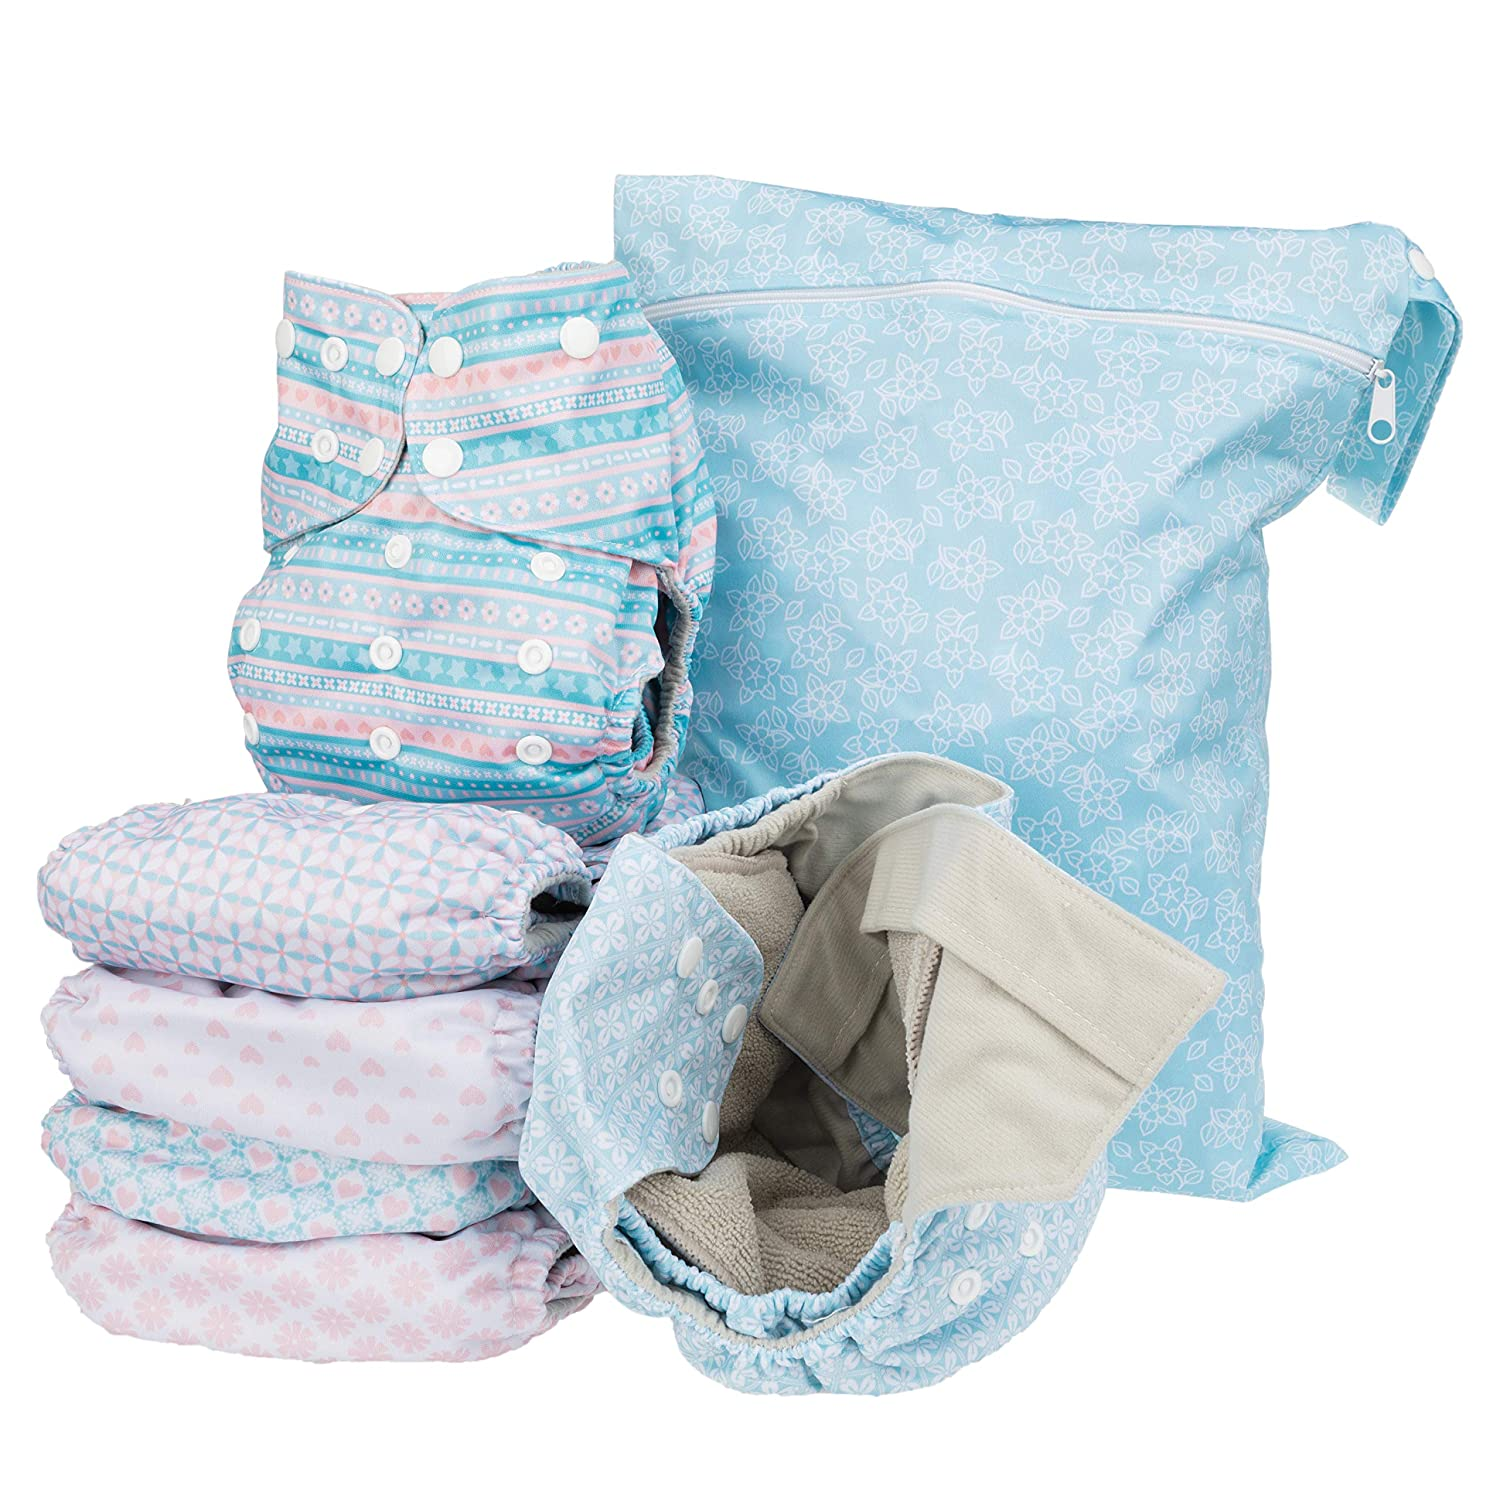 Simple Being Reusable Cloth Diapers- Double Gusset-6 Pack Pocket Adjustable Size-Waterproof Cover-6 Inserts-Wet Bag (Stripes)